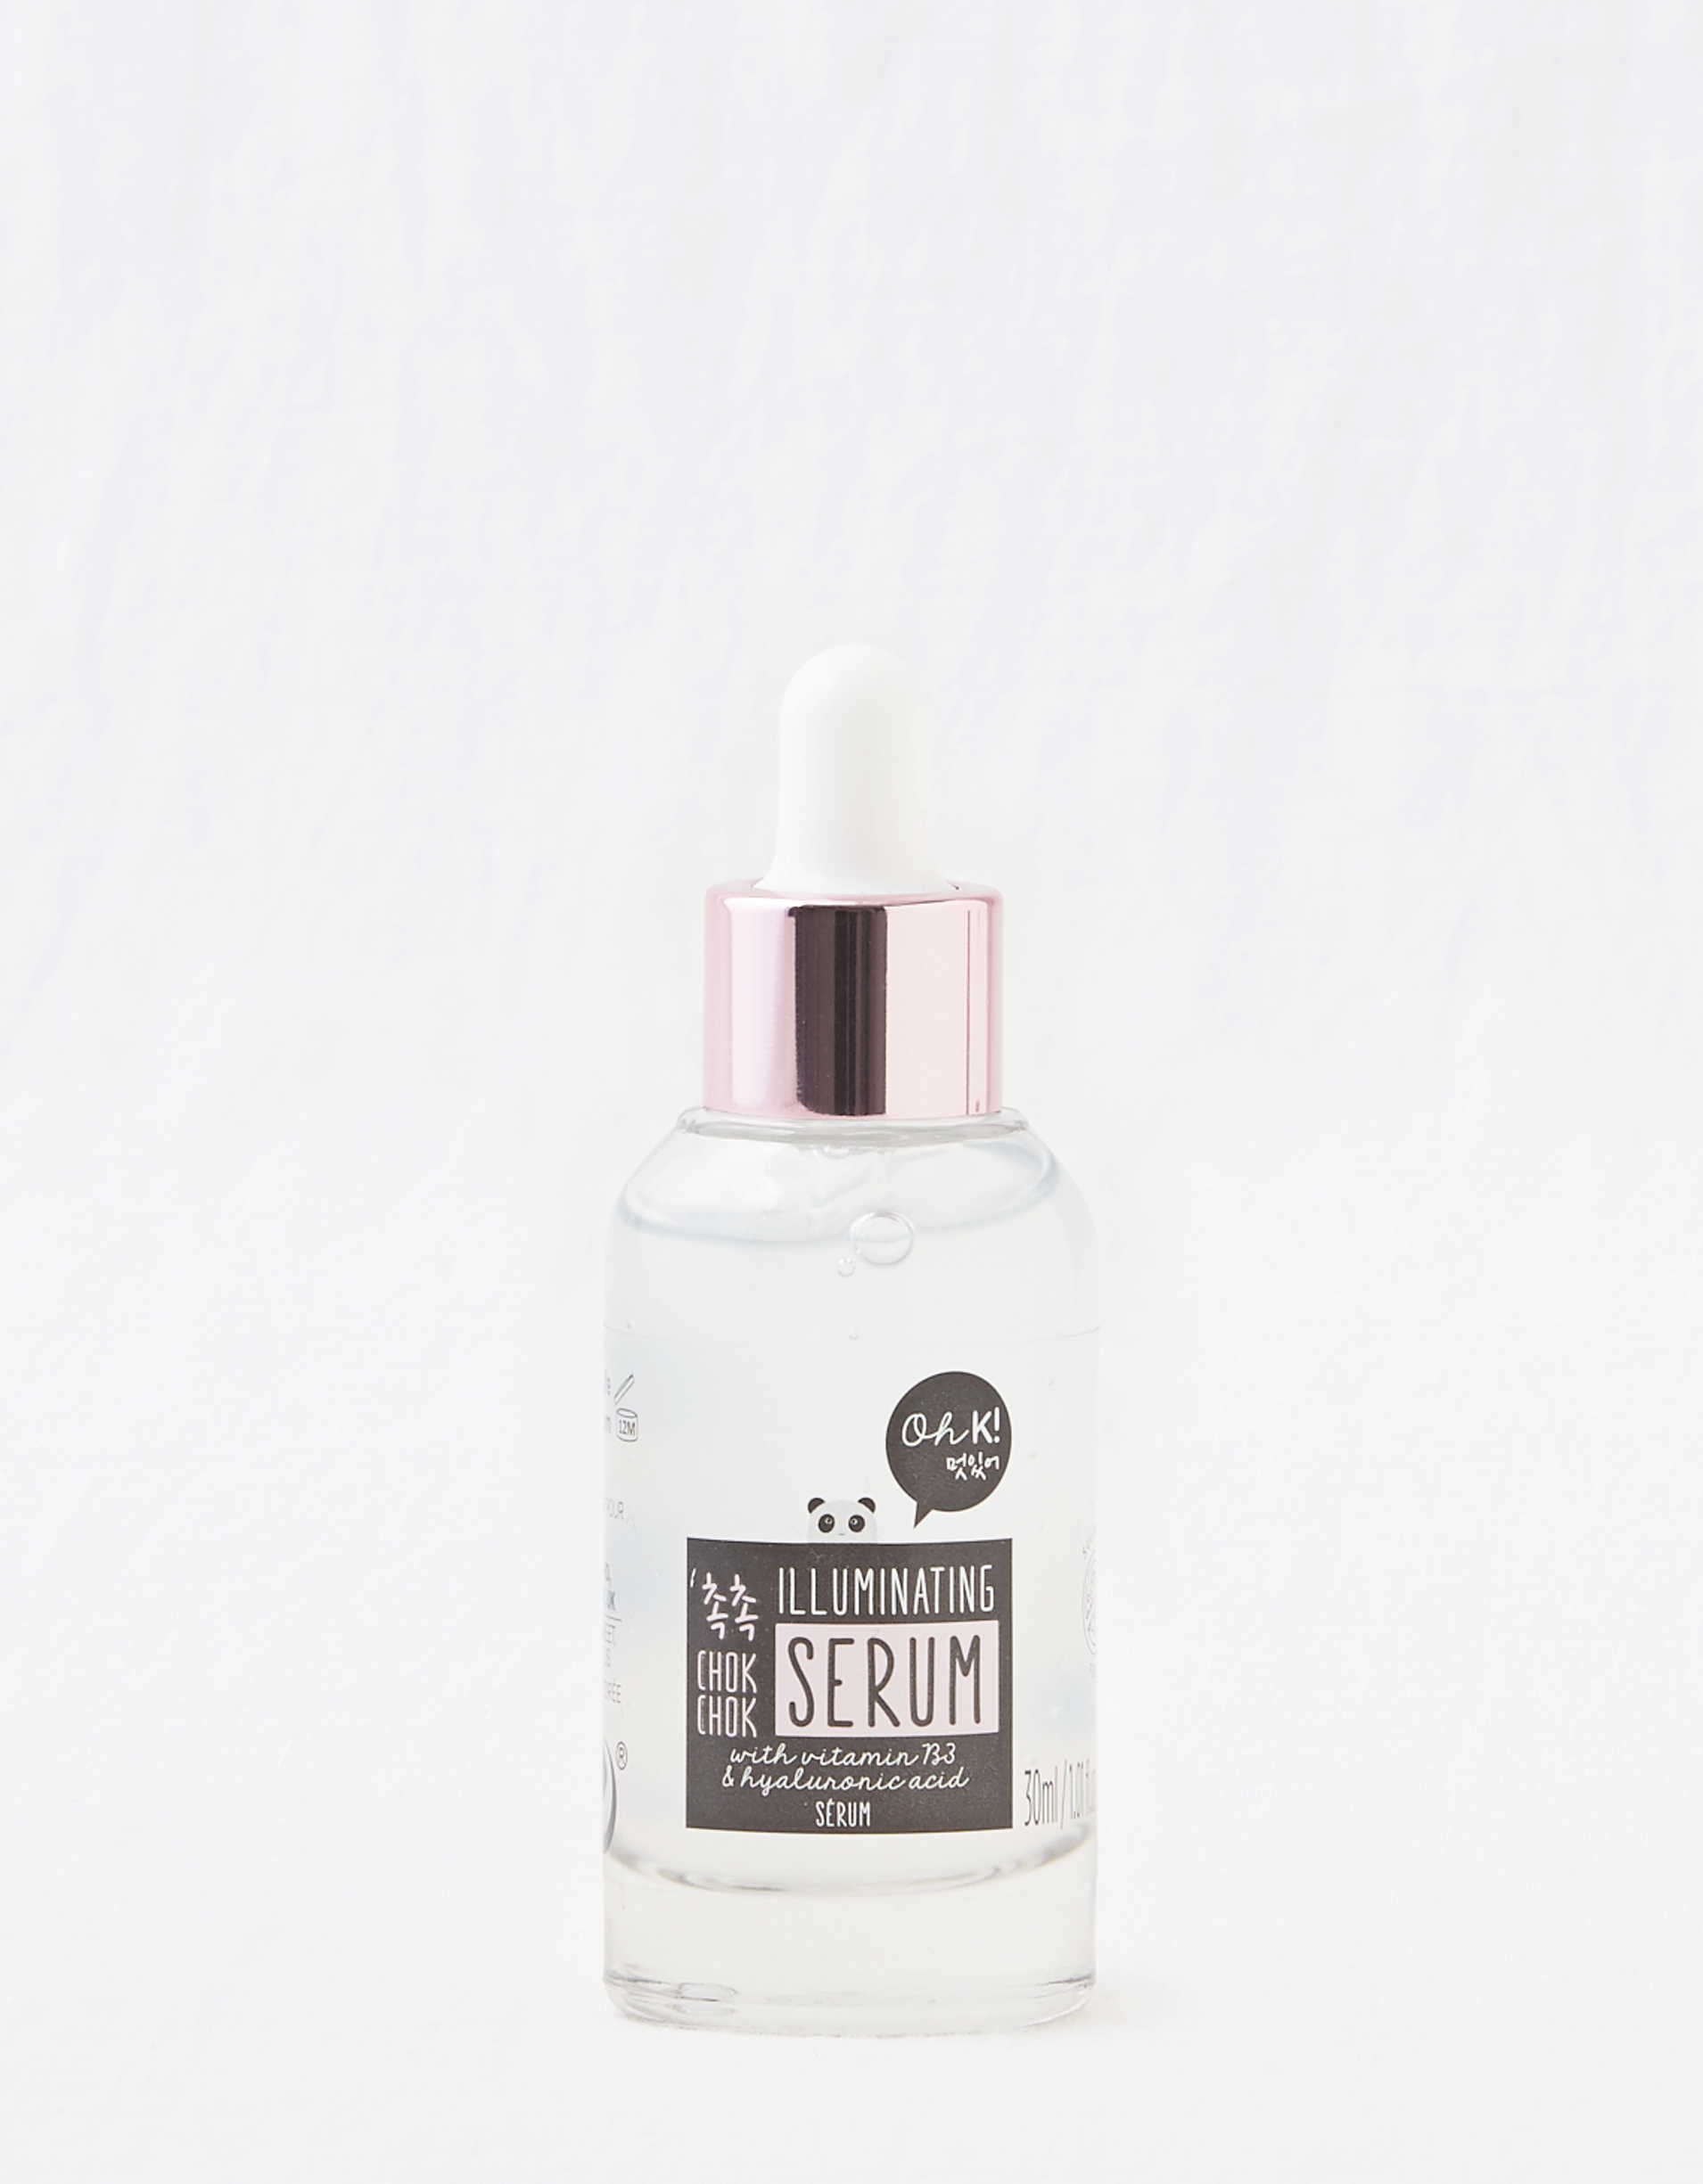 Oh K! Chok Chok Illuminating Serum